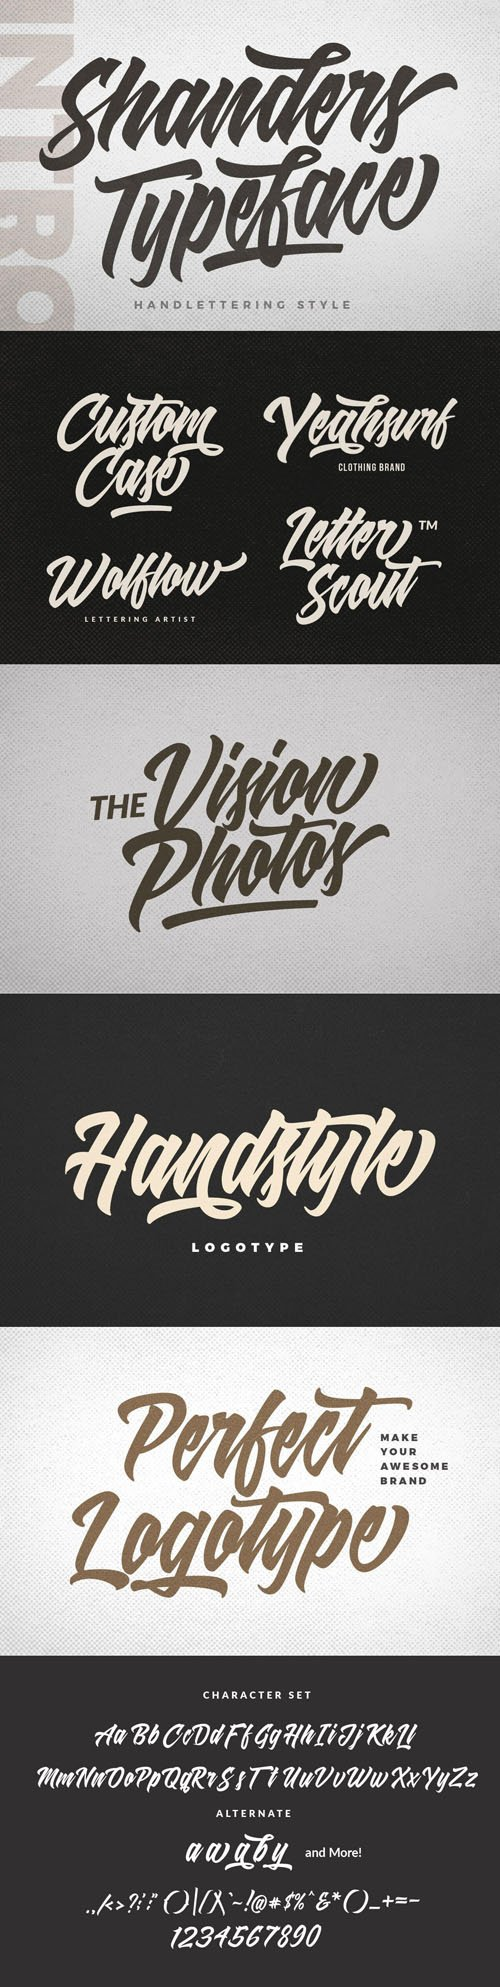 Shanders Typeface - Handlettering Style